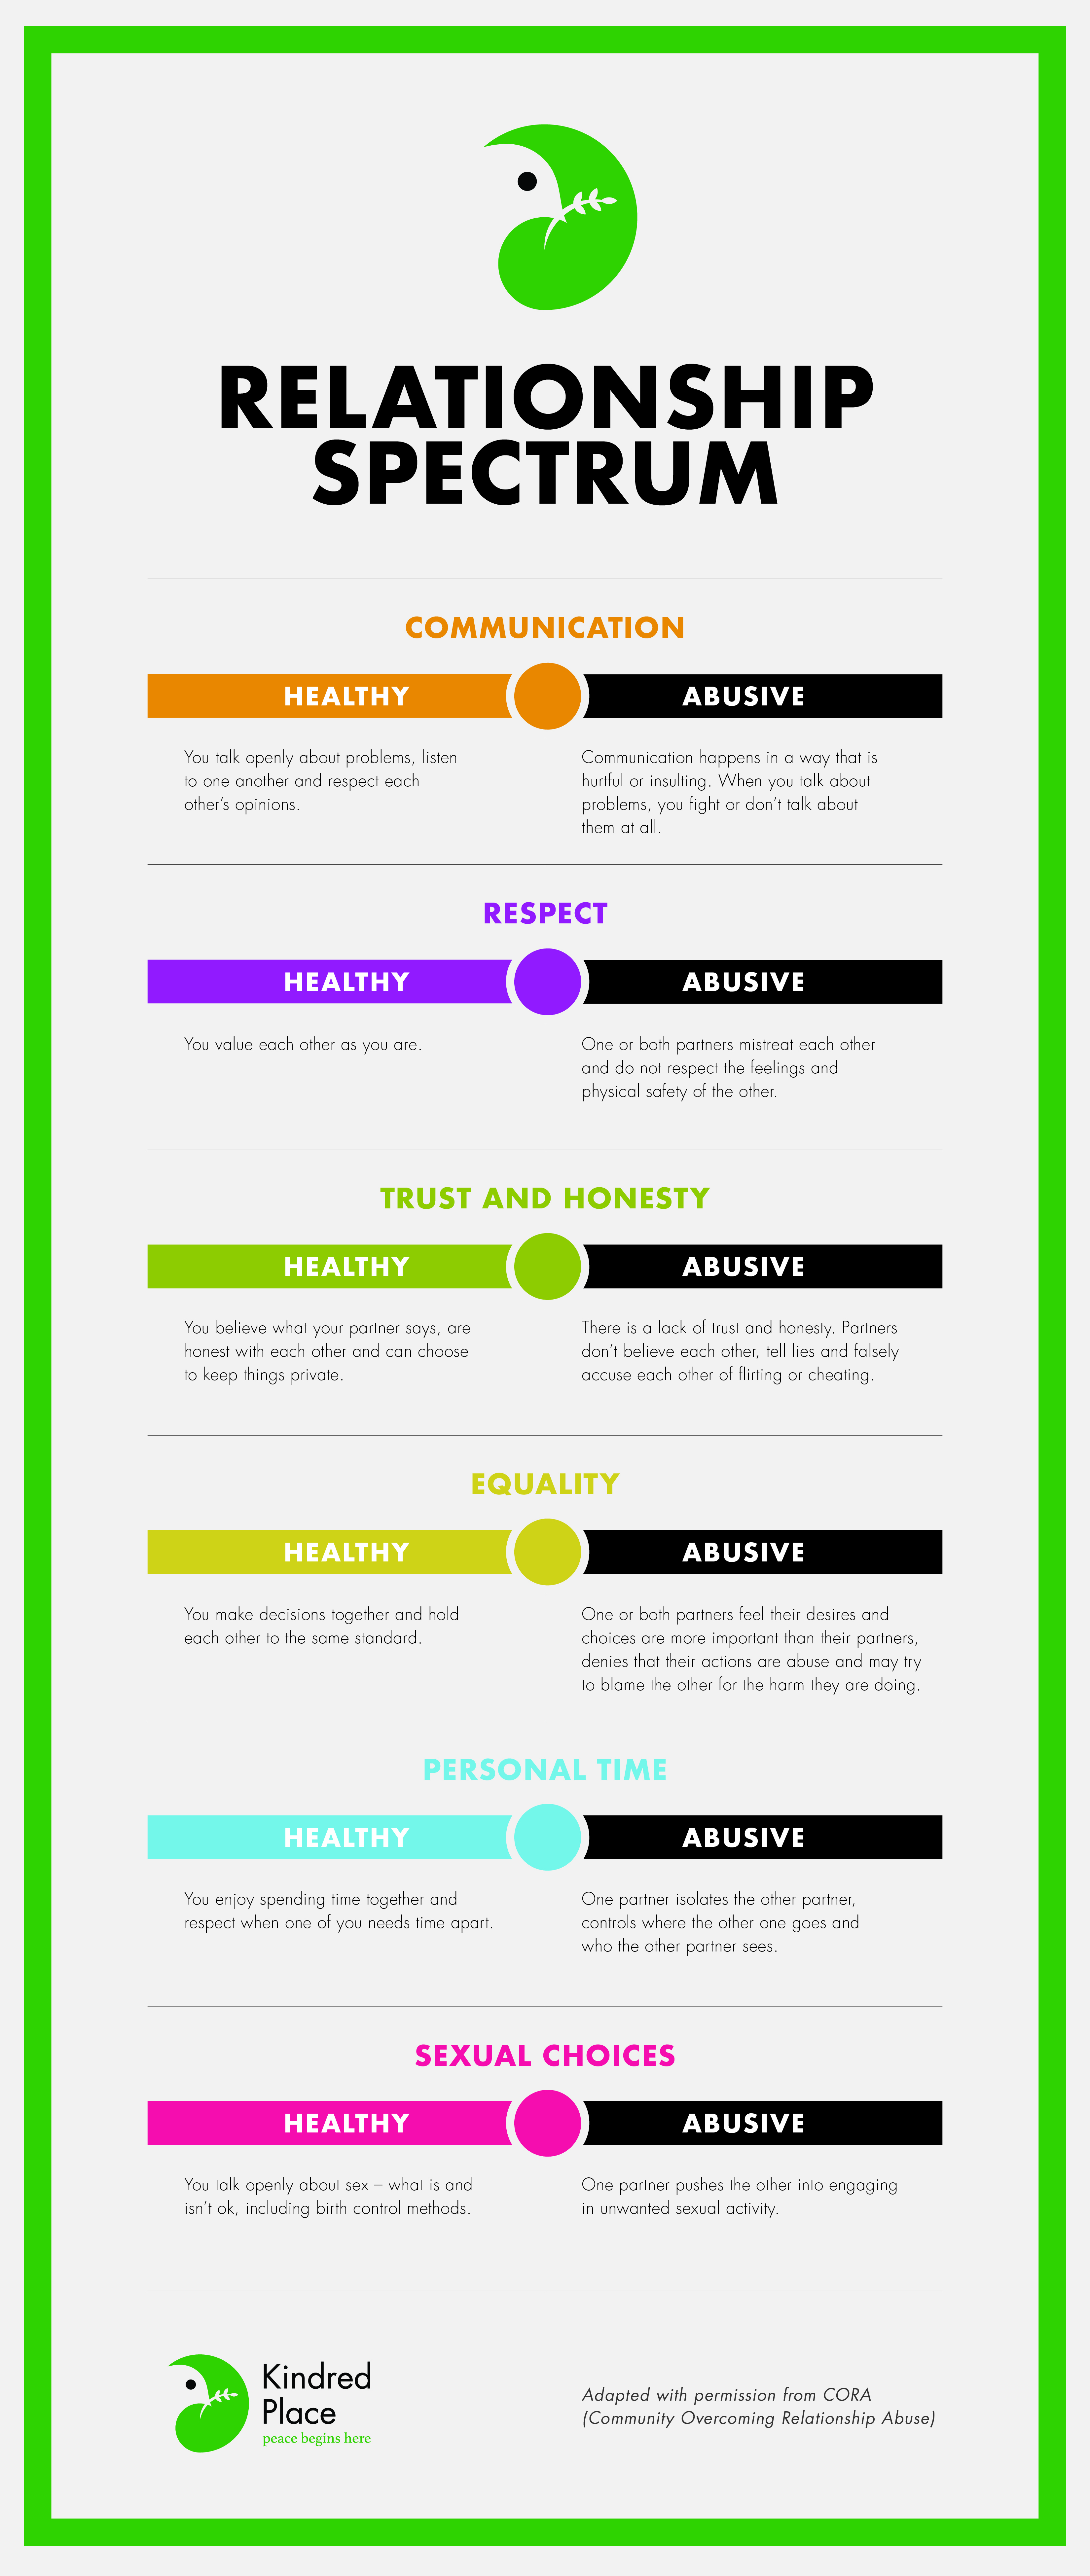 Healthy vs. Abusive Relationships Infographic